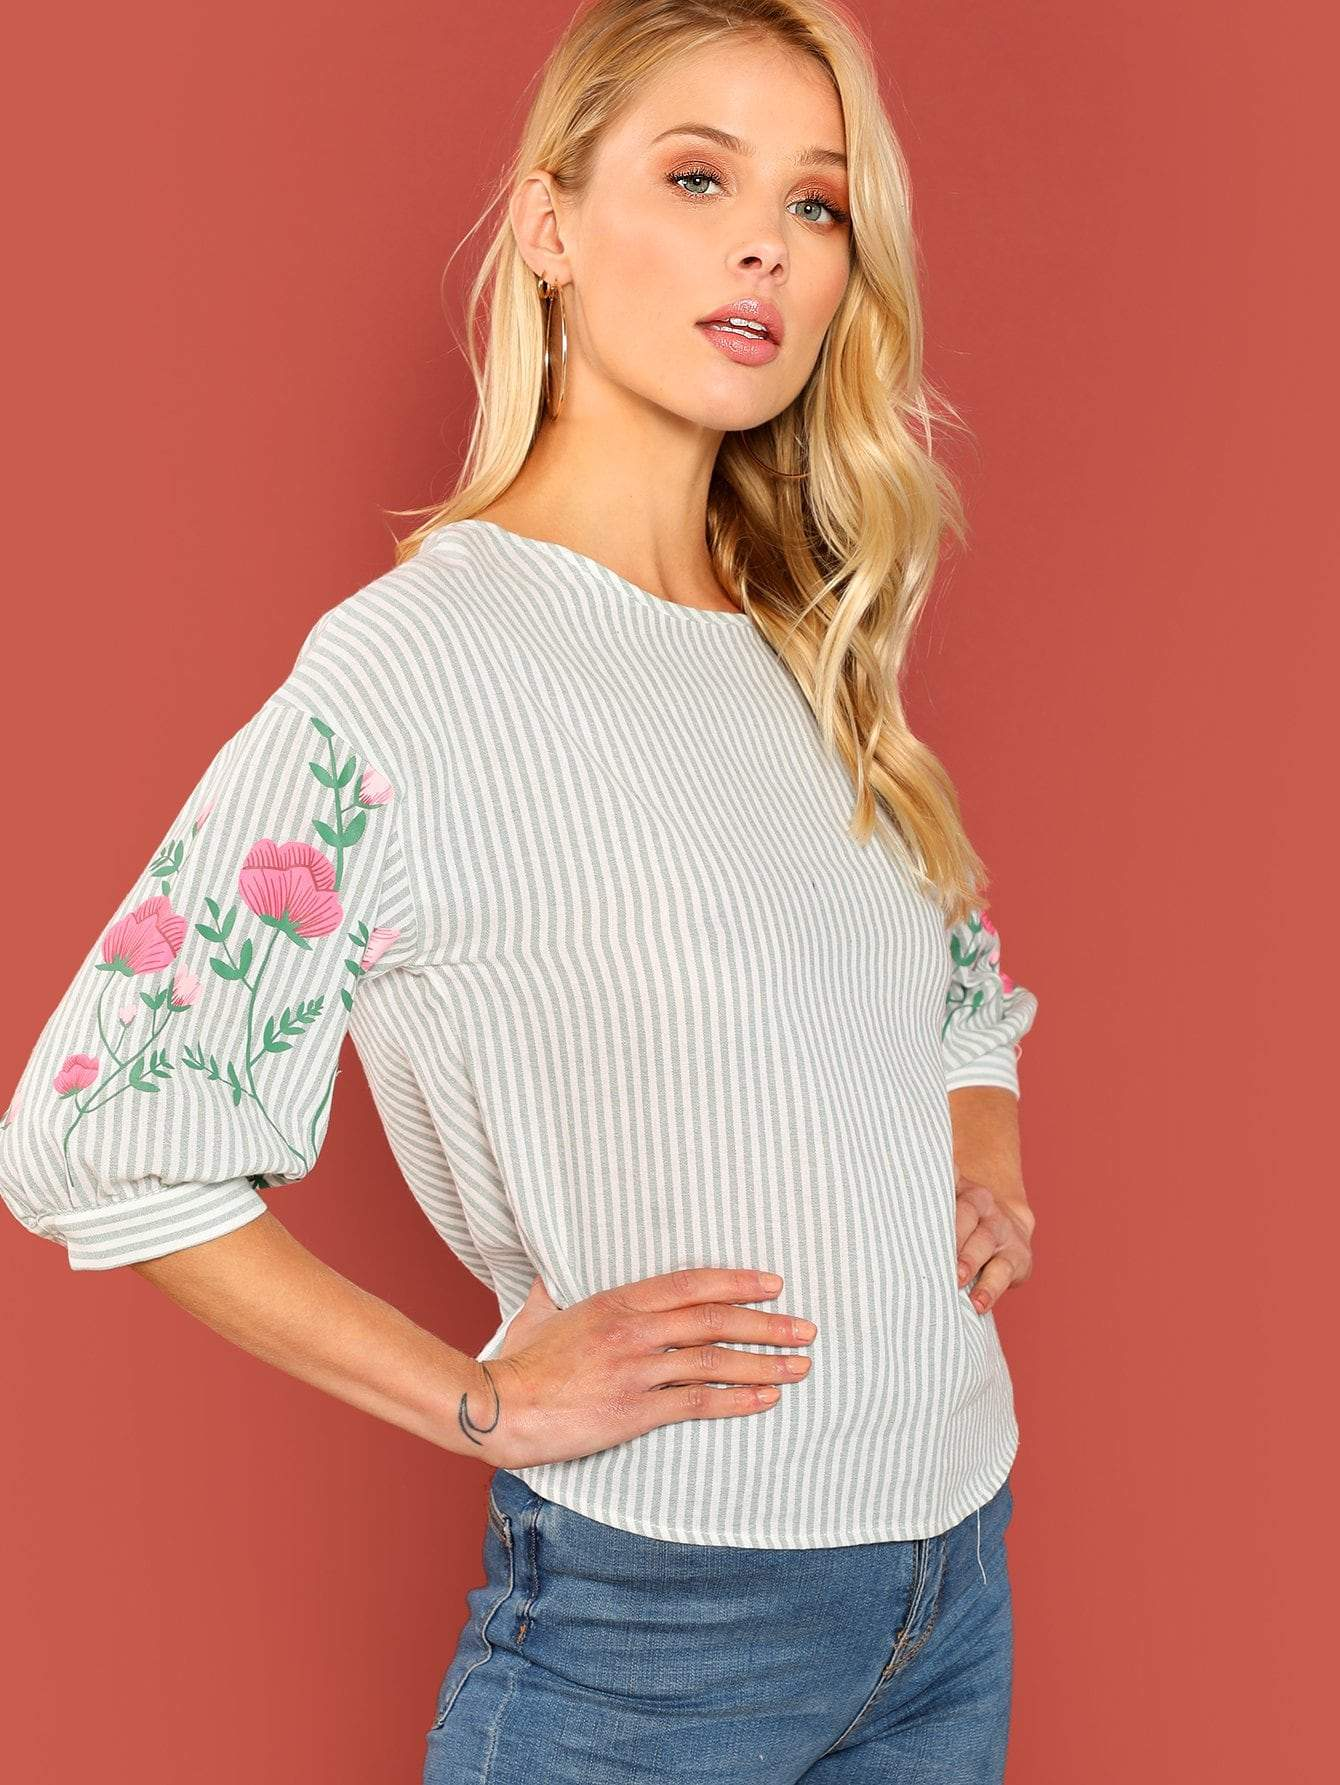 Multicolored Flower Striped Blouse - LoveSylvester